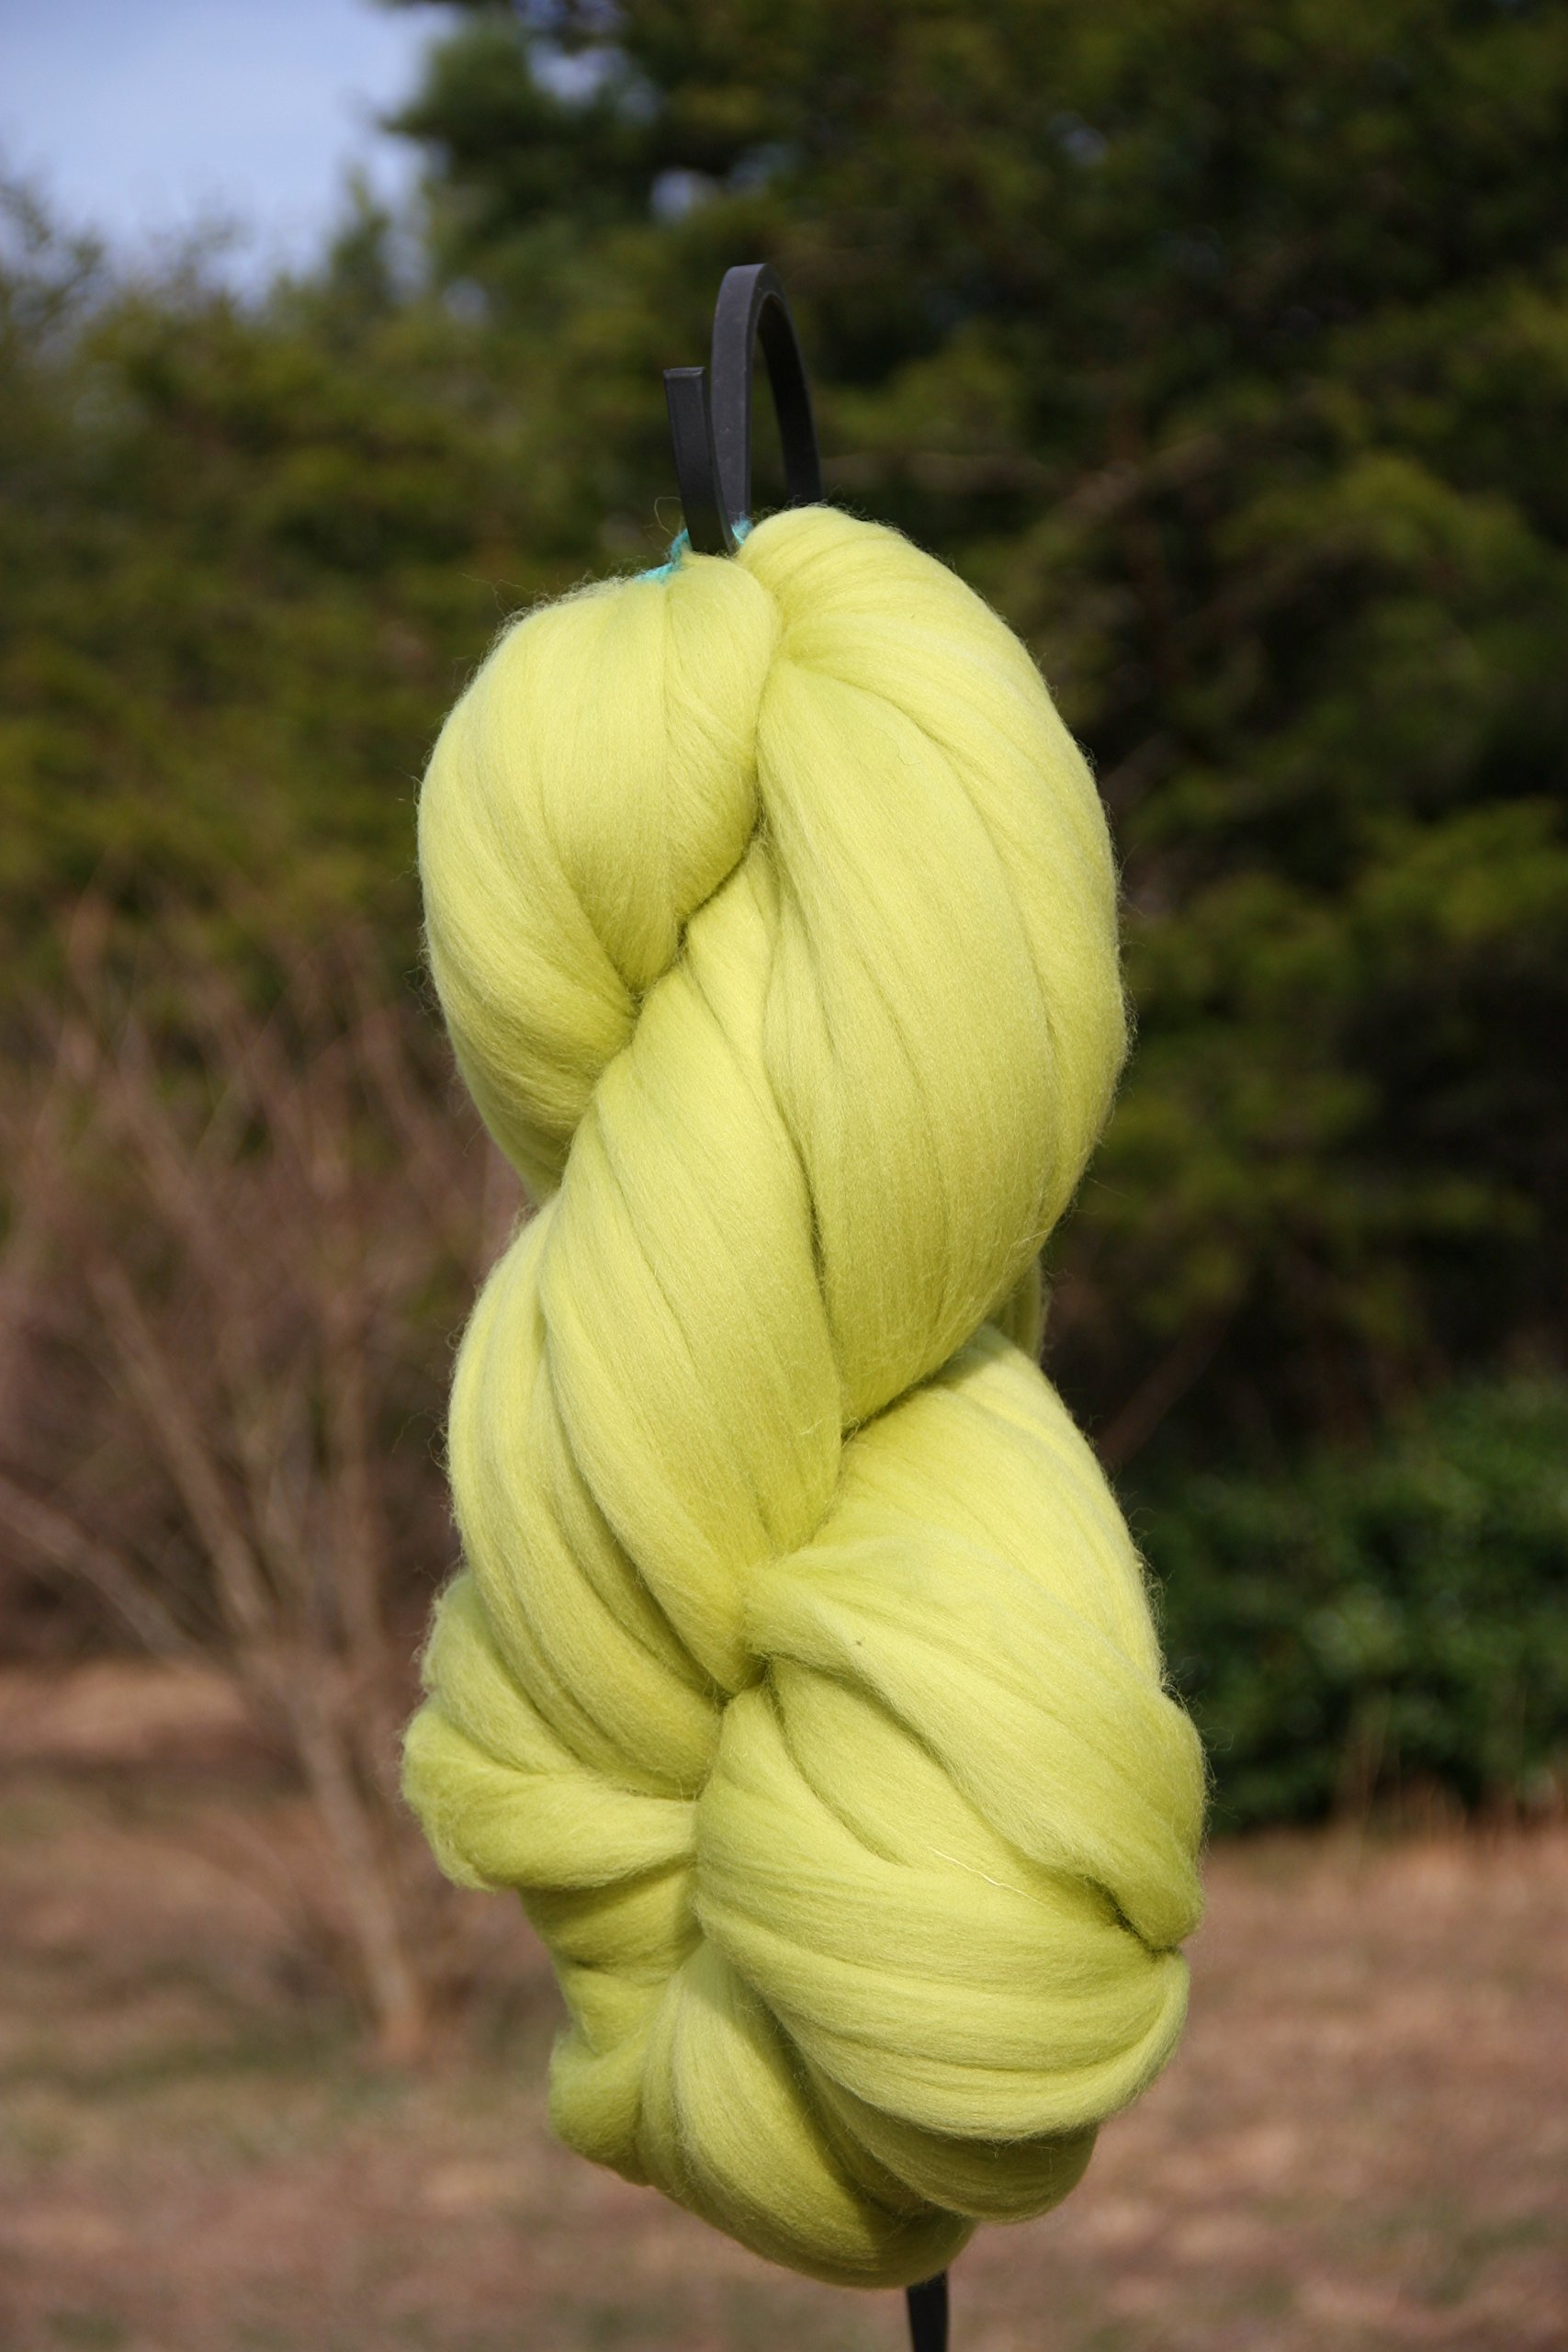 Celedon Green Wool Top Roving Fiber Spinning, Felting Crafts USA (8 lb) by Shep's Wool